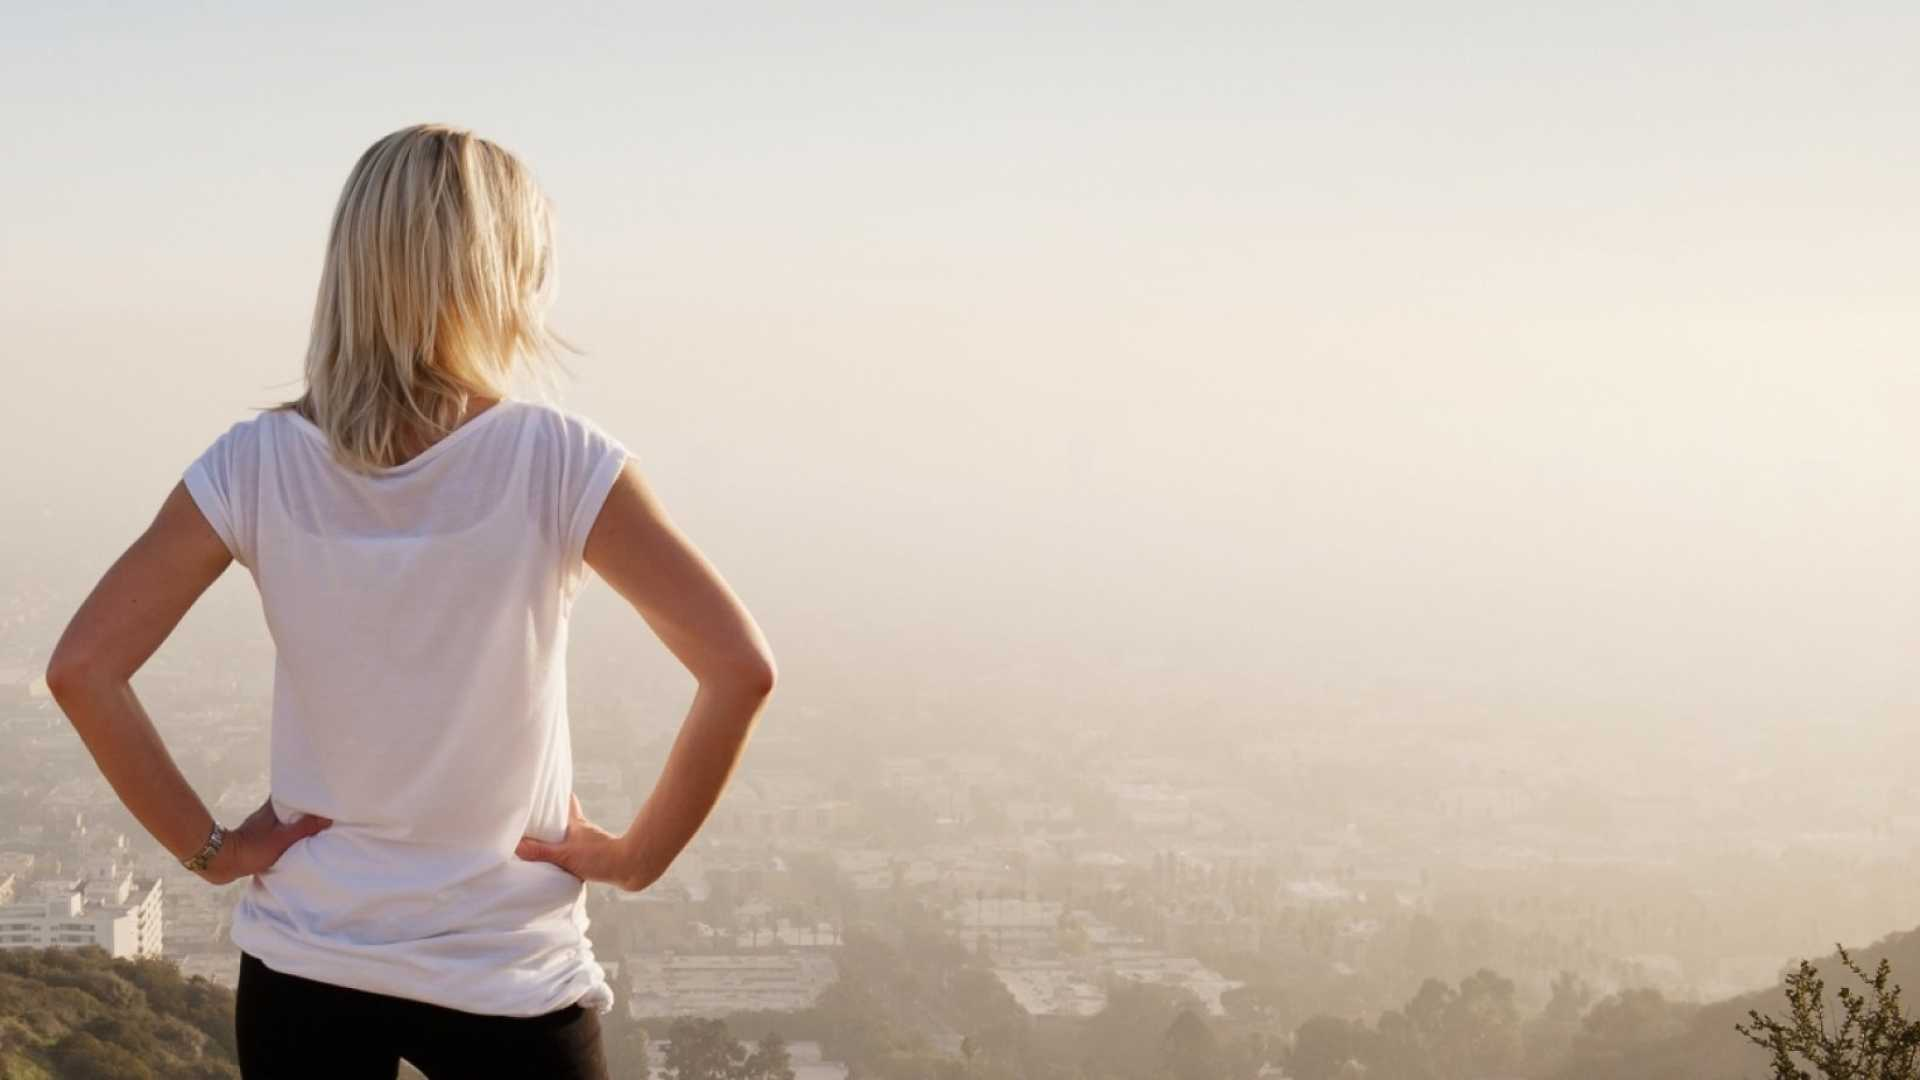 The Scientific Way to Increase Confidence in 2 Minutes